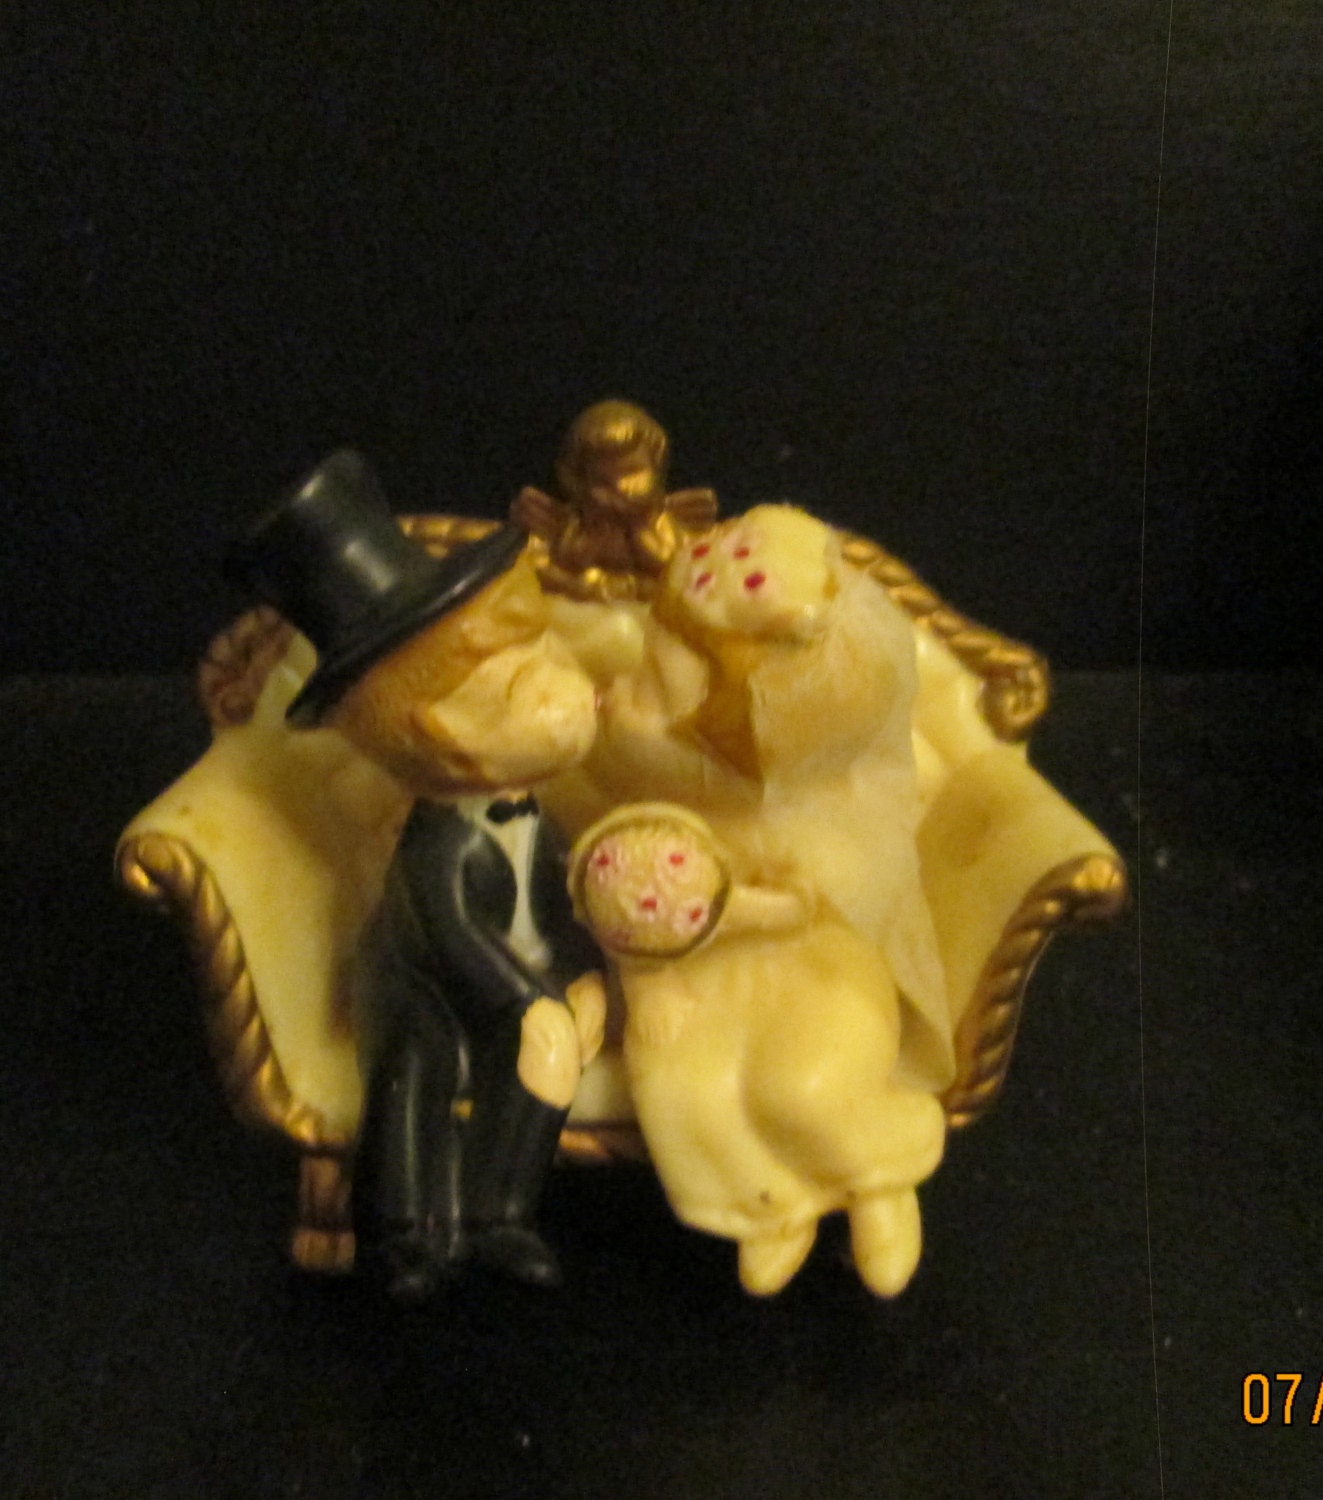 Vintage bride groom cake topper wilton wedding by lipmeister - Wilton baby shower cake toppers ...